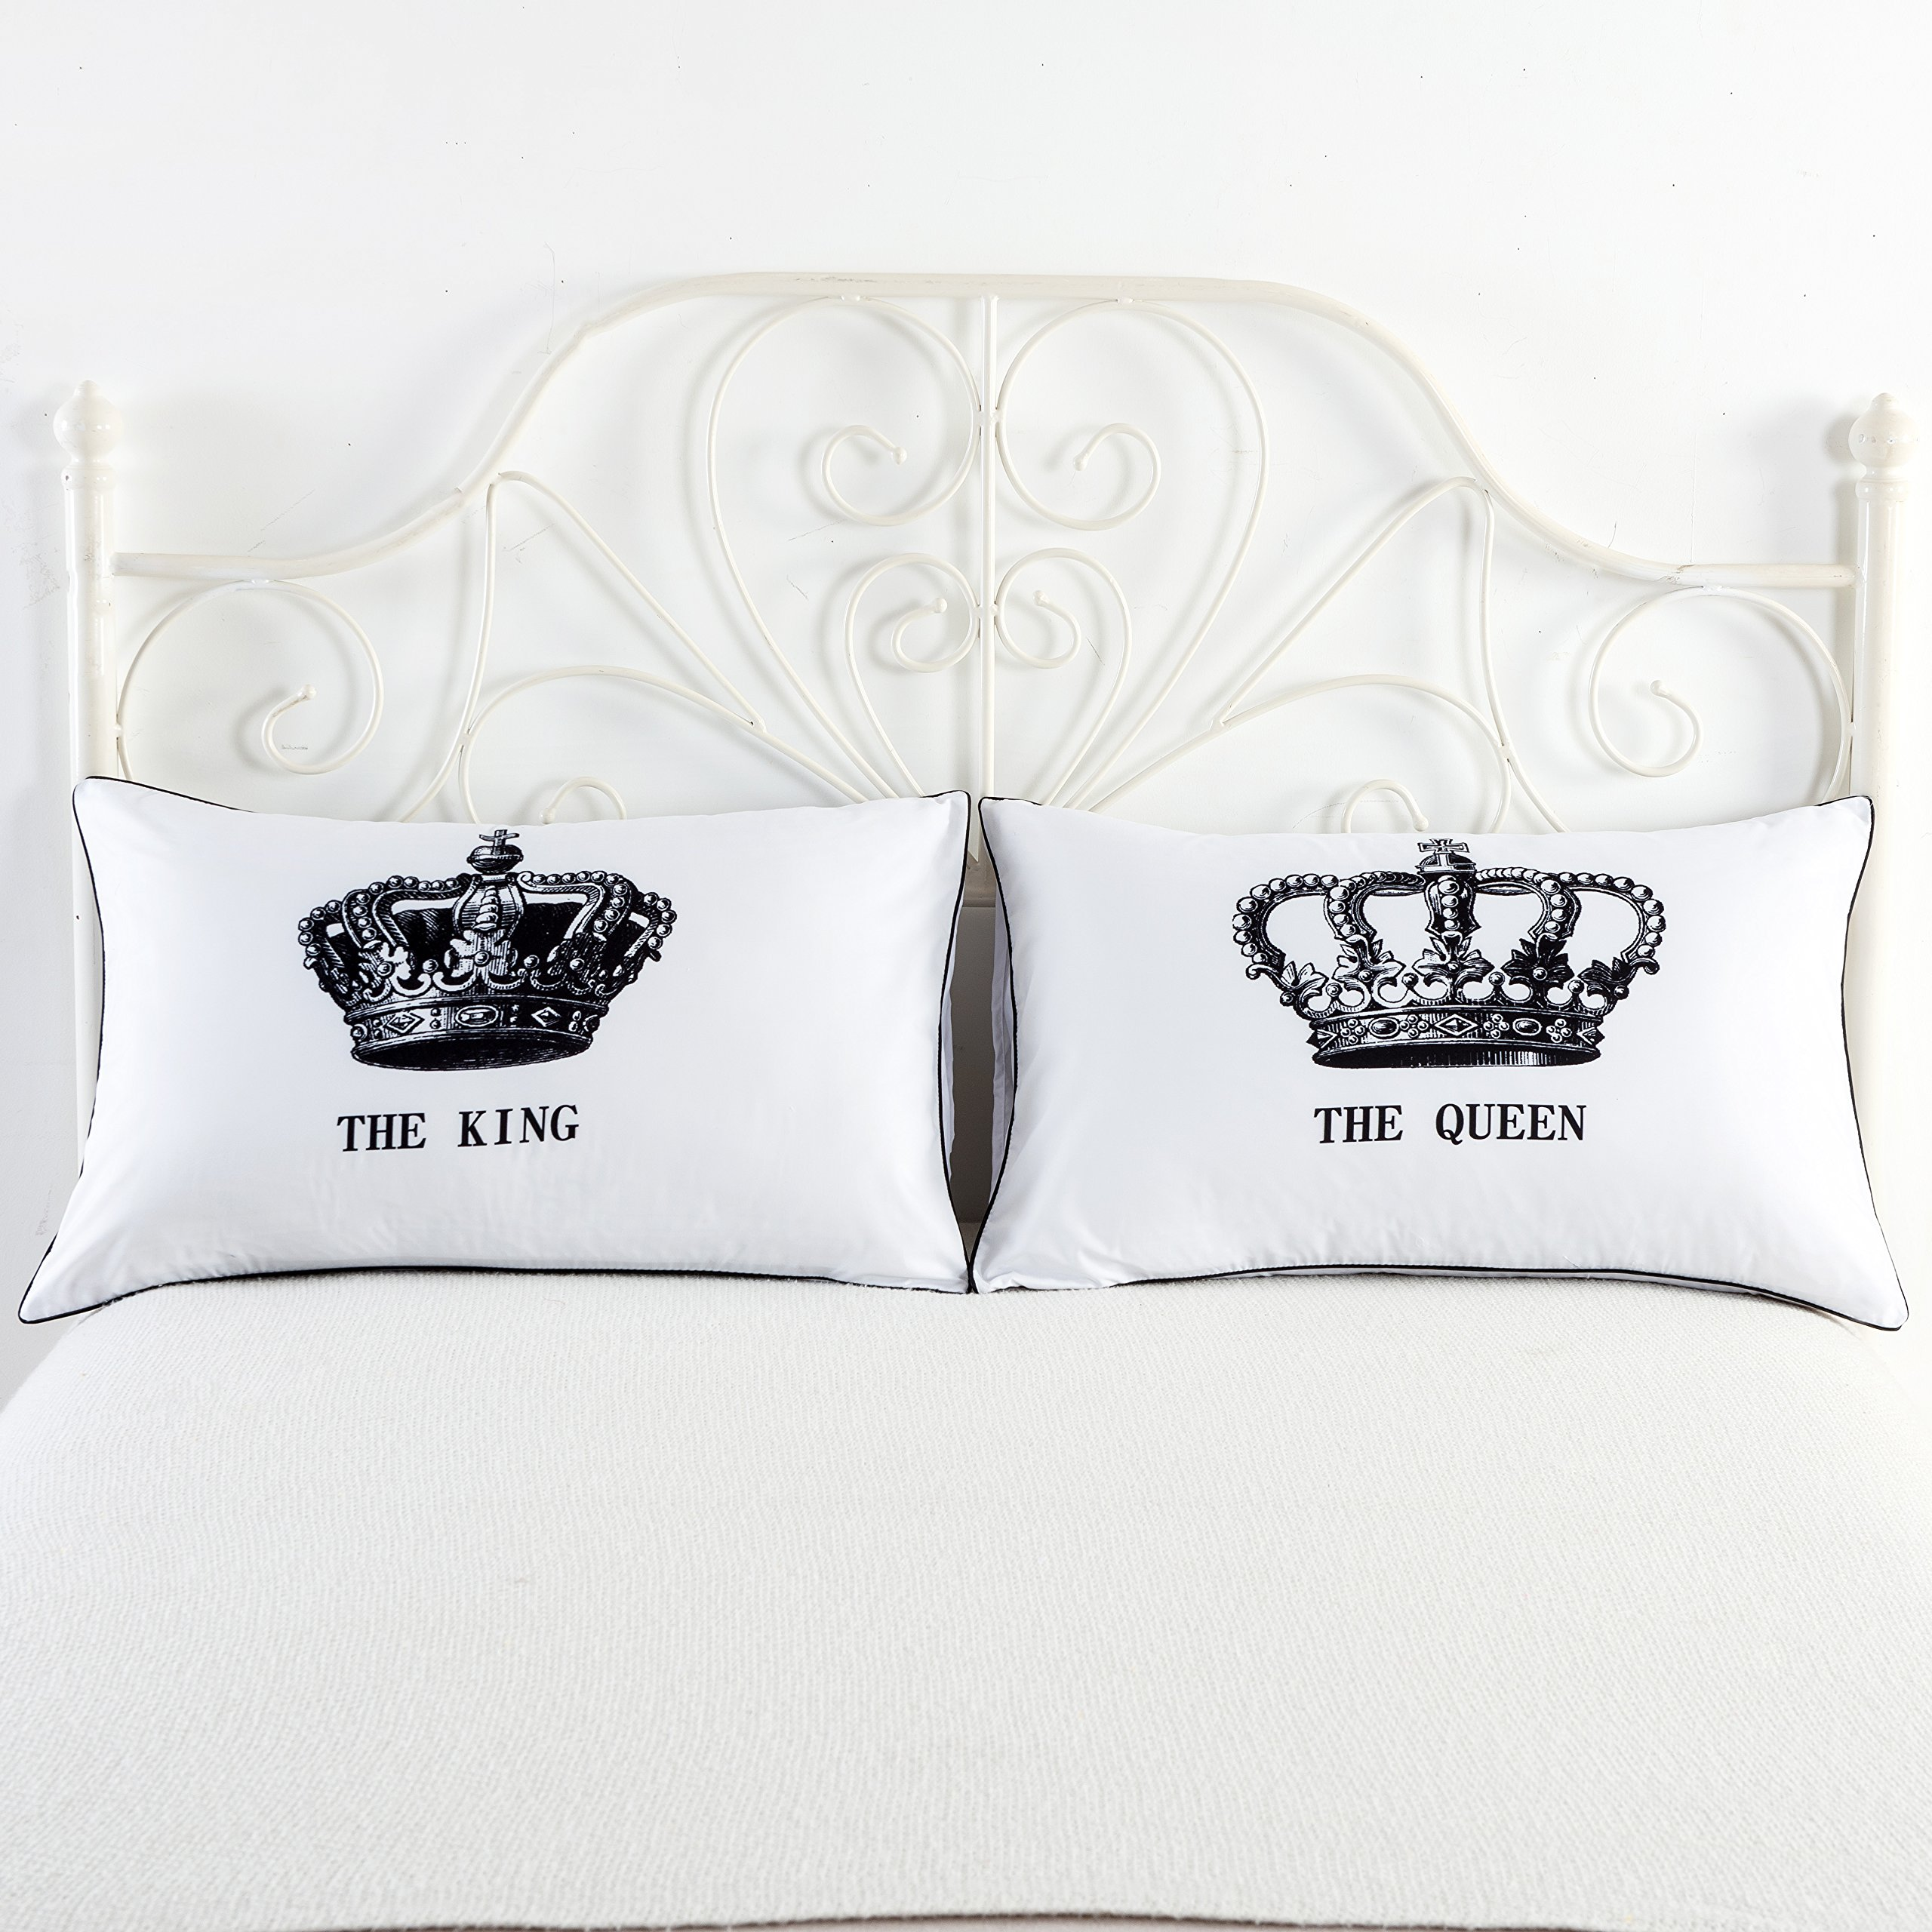 anniversary cases in decorative wedding and king pillowcases cushion from home pillow bedroom item gifts cover his couples queen hers